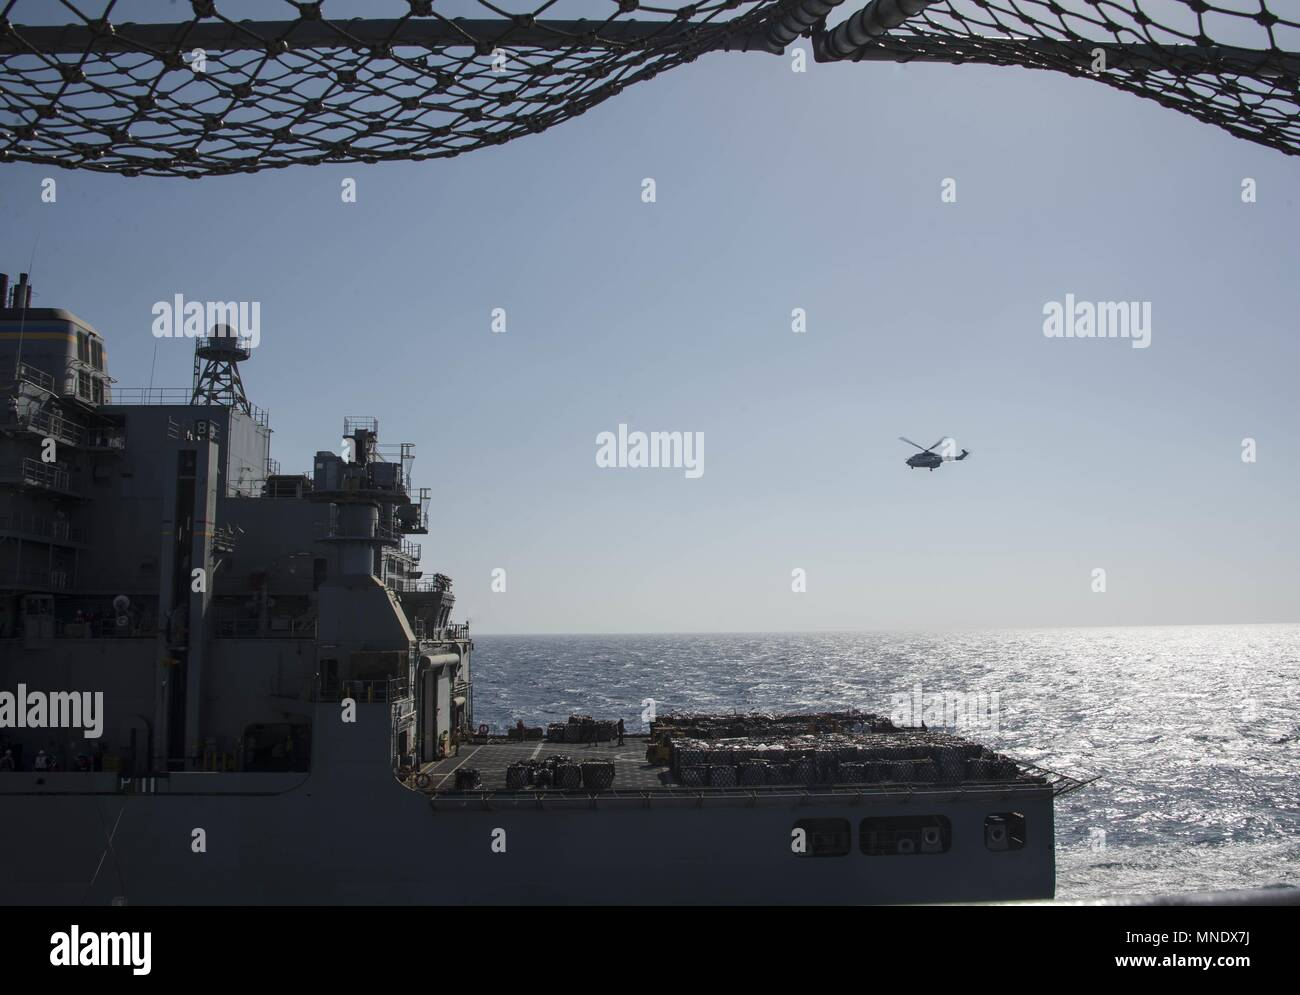 180515-N-AH771-0095 U.S. 5TH FLEET AREA OF OPERATIONS (May 15, 2018) The dry cargo and ammunition ship USNS Amelia Earhart (T-AKE 6) steadies alongside the Wasp-class amphibious assault ship USS Iwo Jima (LHD 7) during a replenishment-at-sea, May 15, 2018, May 15, 2018. Iwo Jima, homeported in Mayport, Fla. is on deployment to the U.S. 5th Fleet area of operations in support of maritime security operations to reassure allies and partners, and preserve the freedom of navigation and the free flow of commerce in the region. (U.S. Navy photo by Mass Communication Specialist 3rd Class Daniel C. Cox Stock Photo